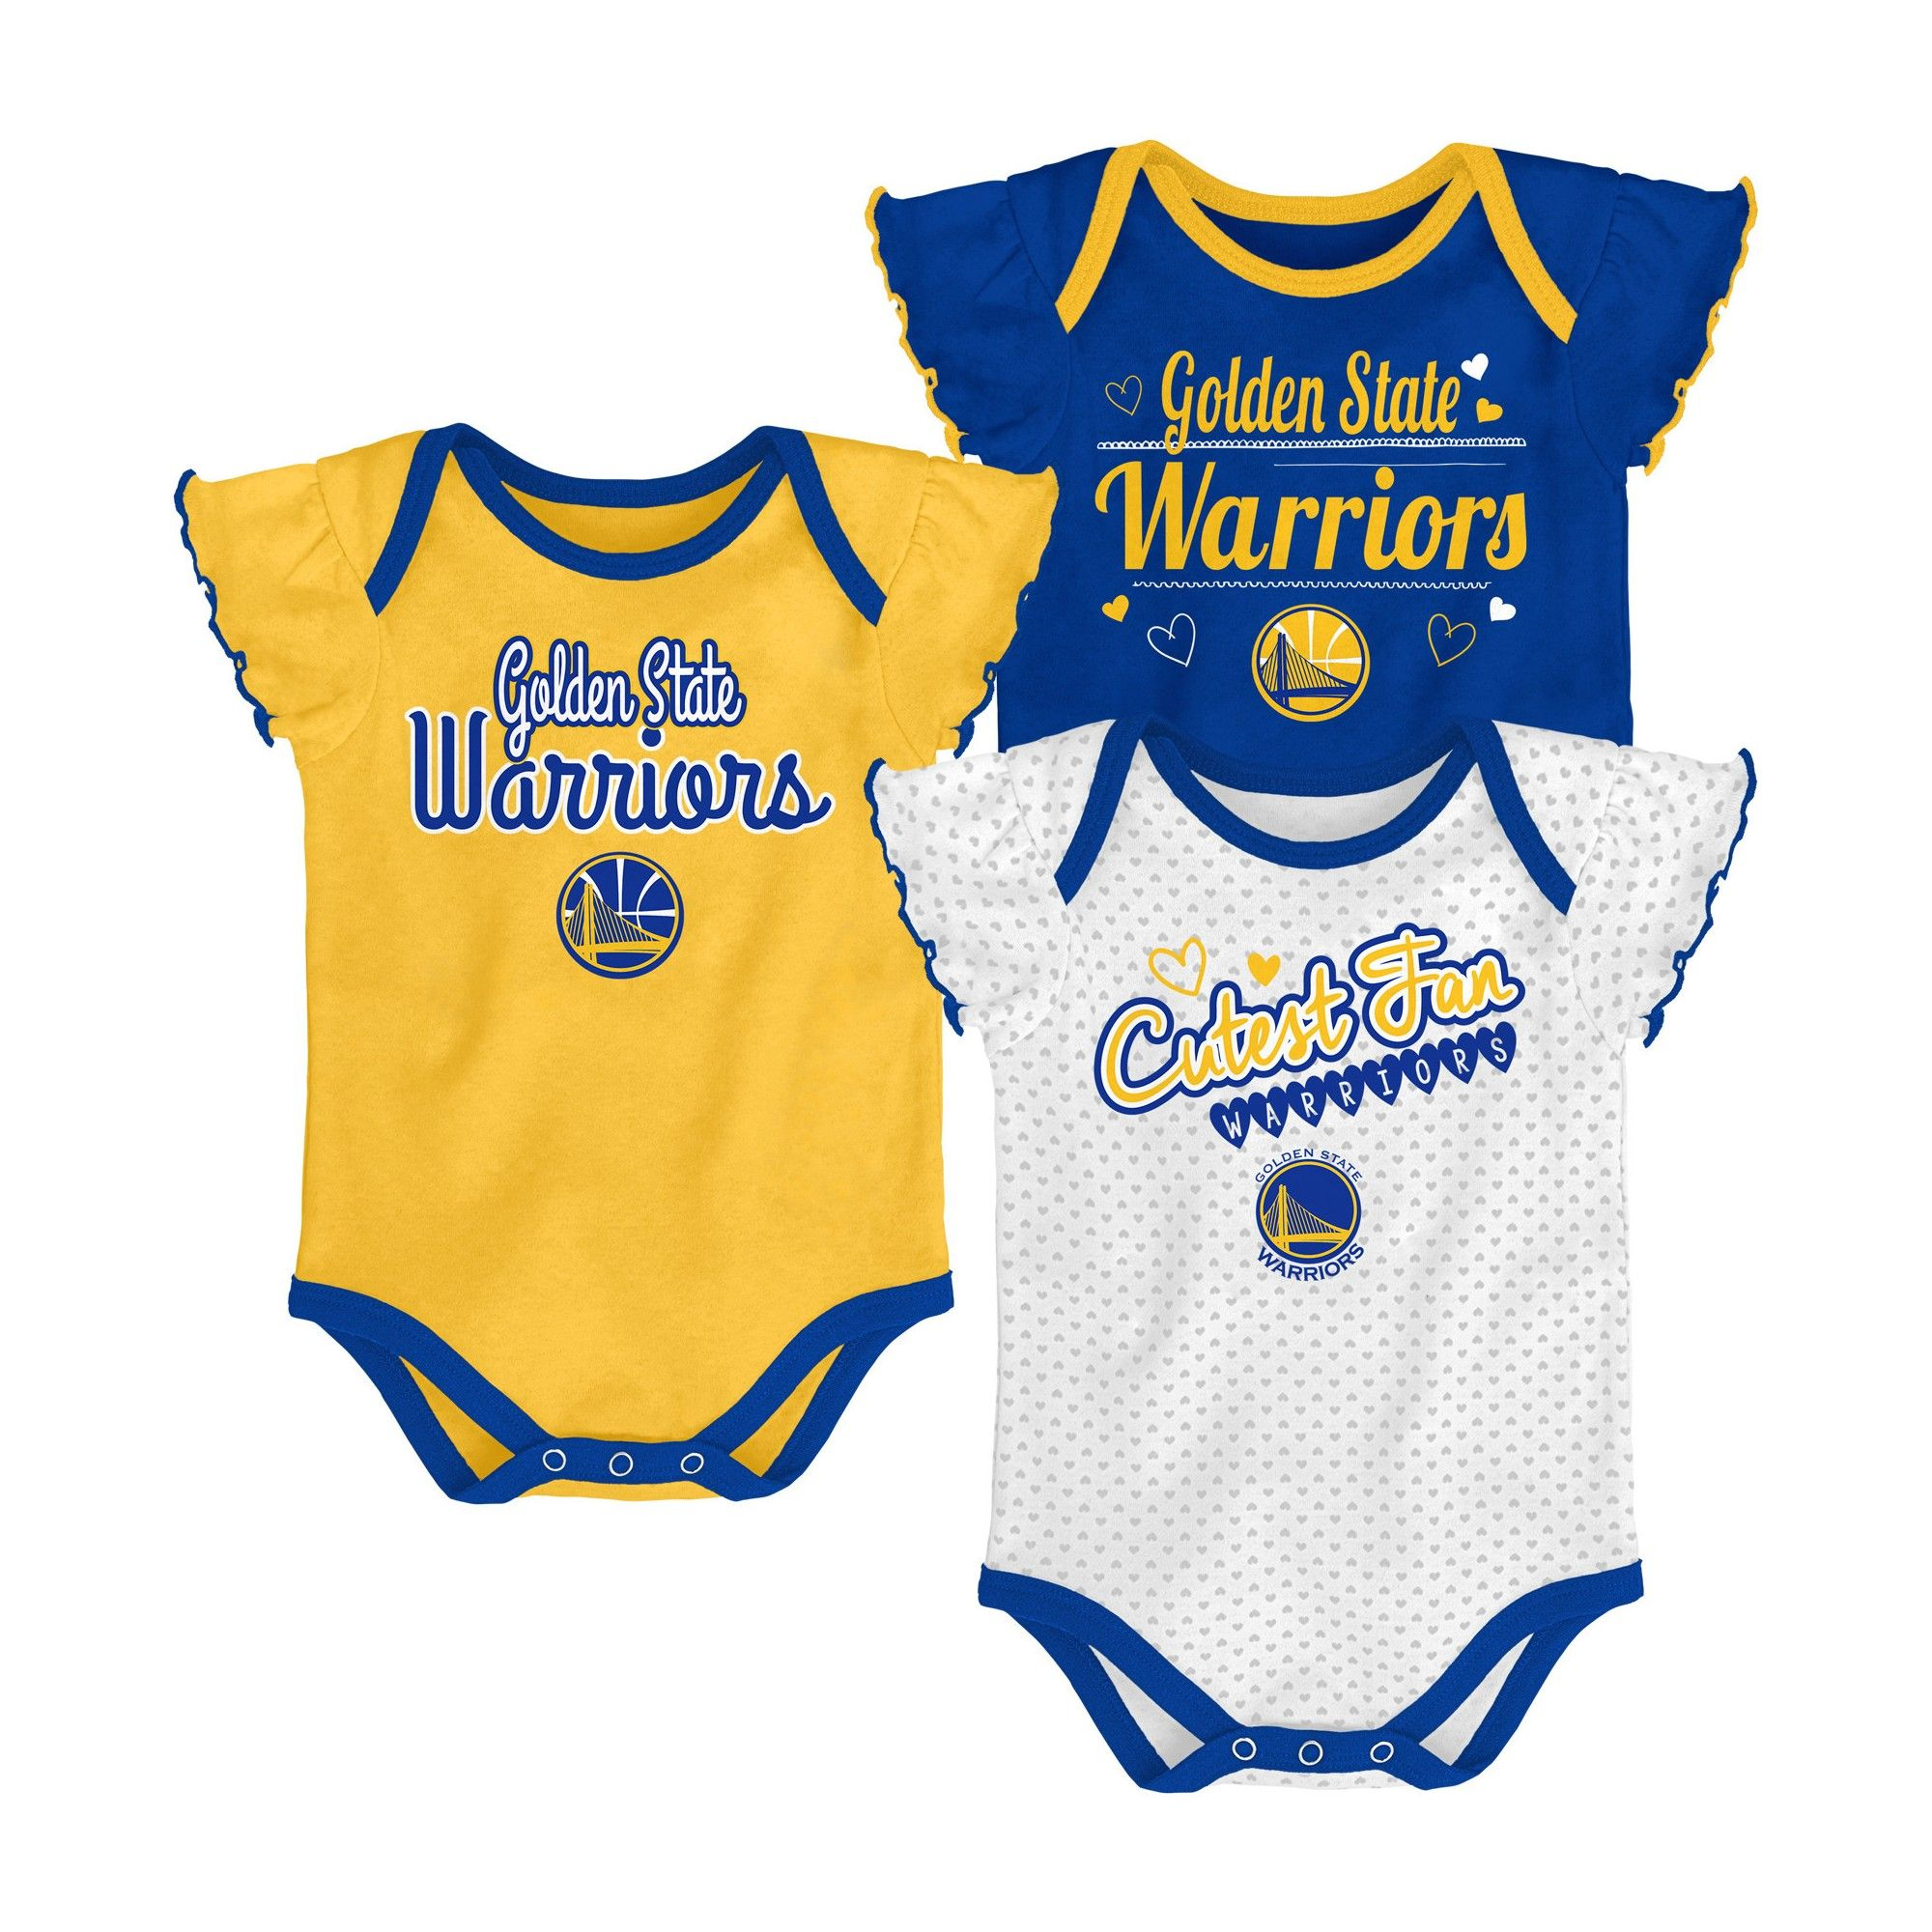 Golden State Warriors Girls Draft Pick 3pk Body Suit Set 0 3 M Size 0 3m Multicolored Golden State Warriors Nba Golden State Warriors Warrior Girl